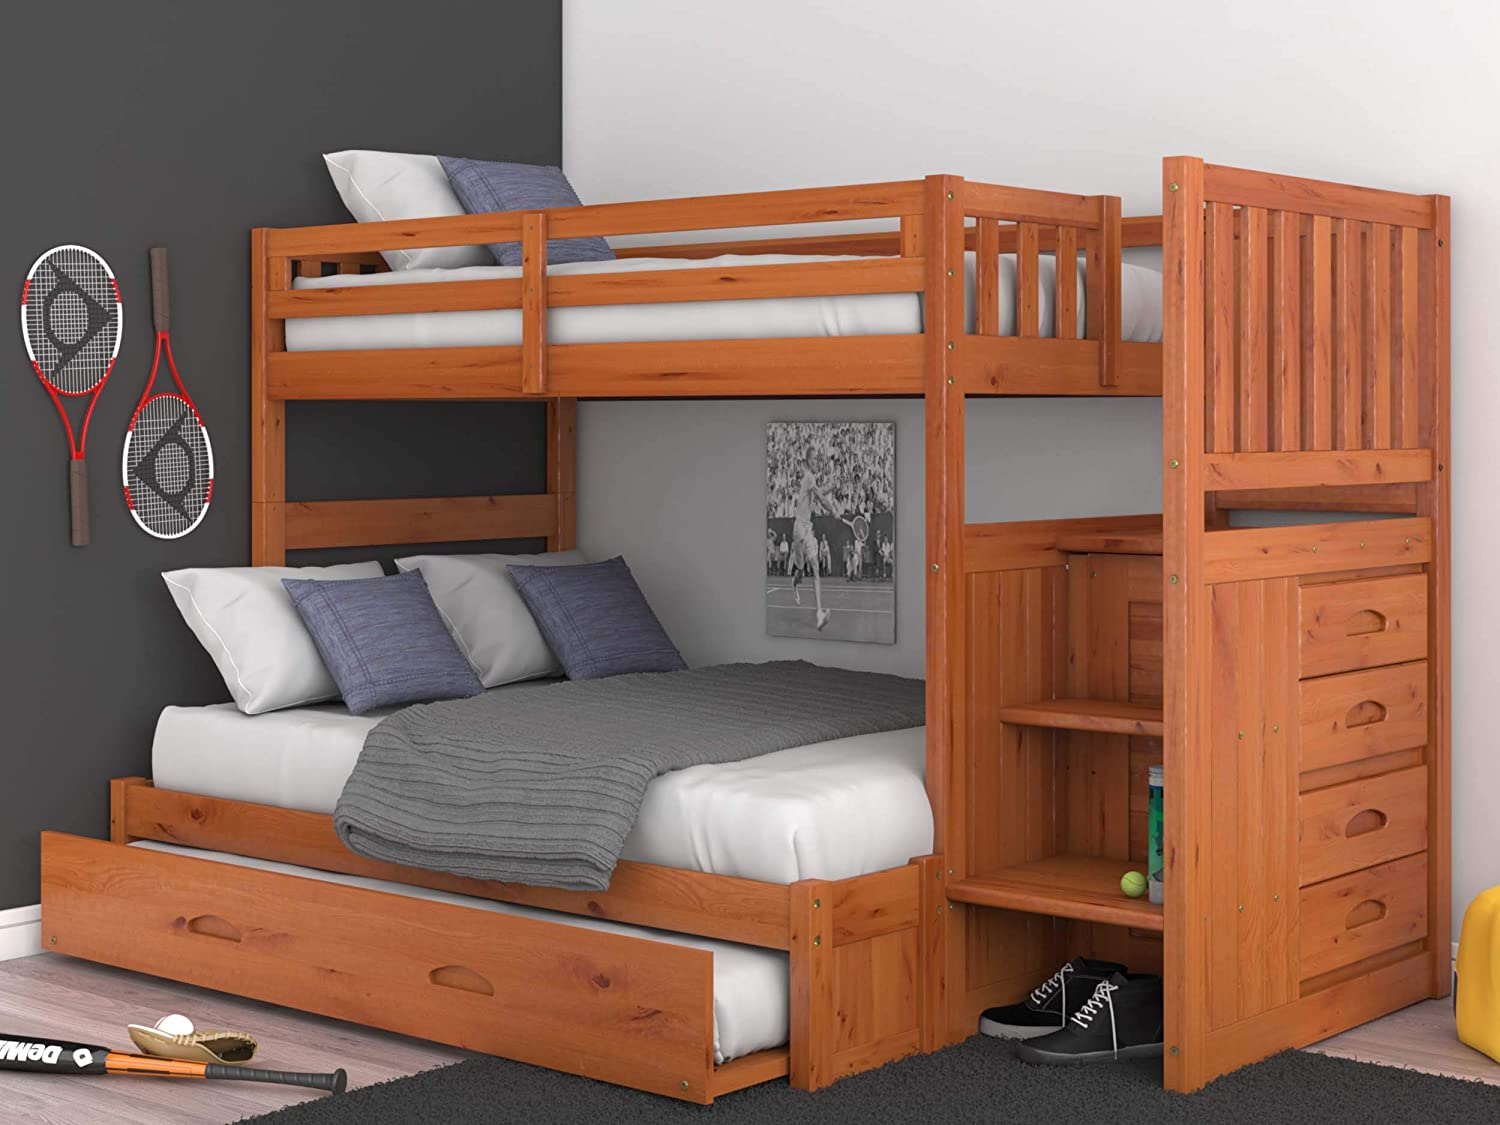 Discovery World Furniture Mission Twin Over Full Staircase Bunk Bed with Trundle, Desk, Hutch, Chair and Entertainment Dresser in Honey Finish